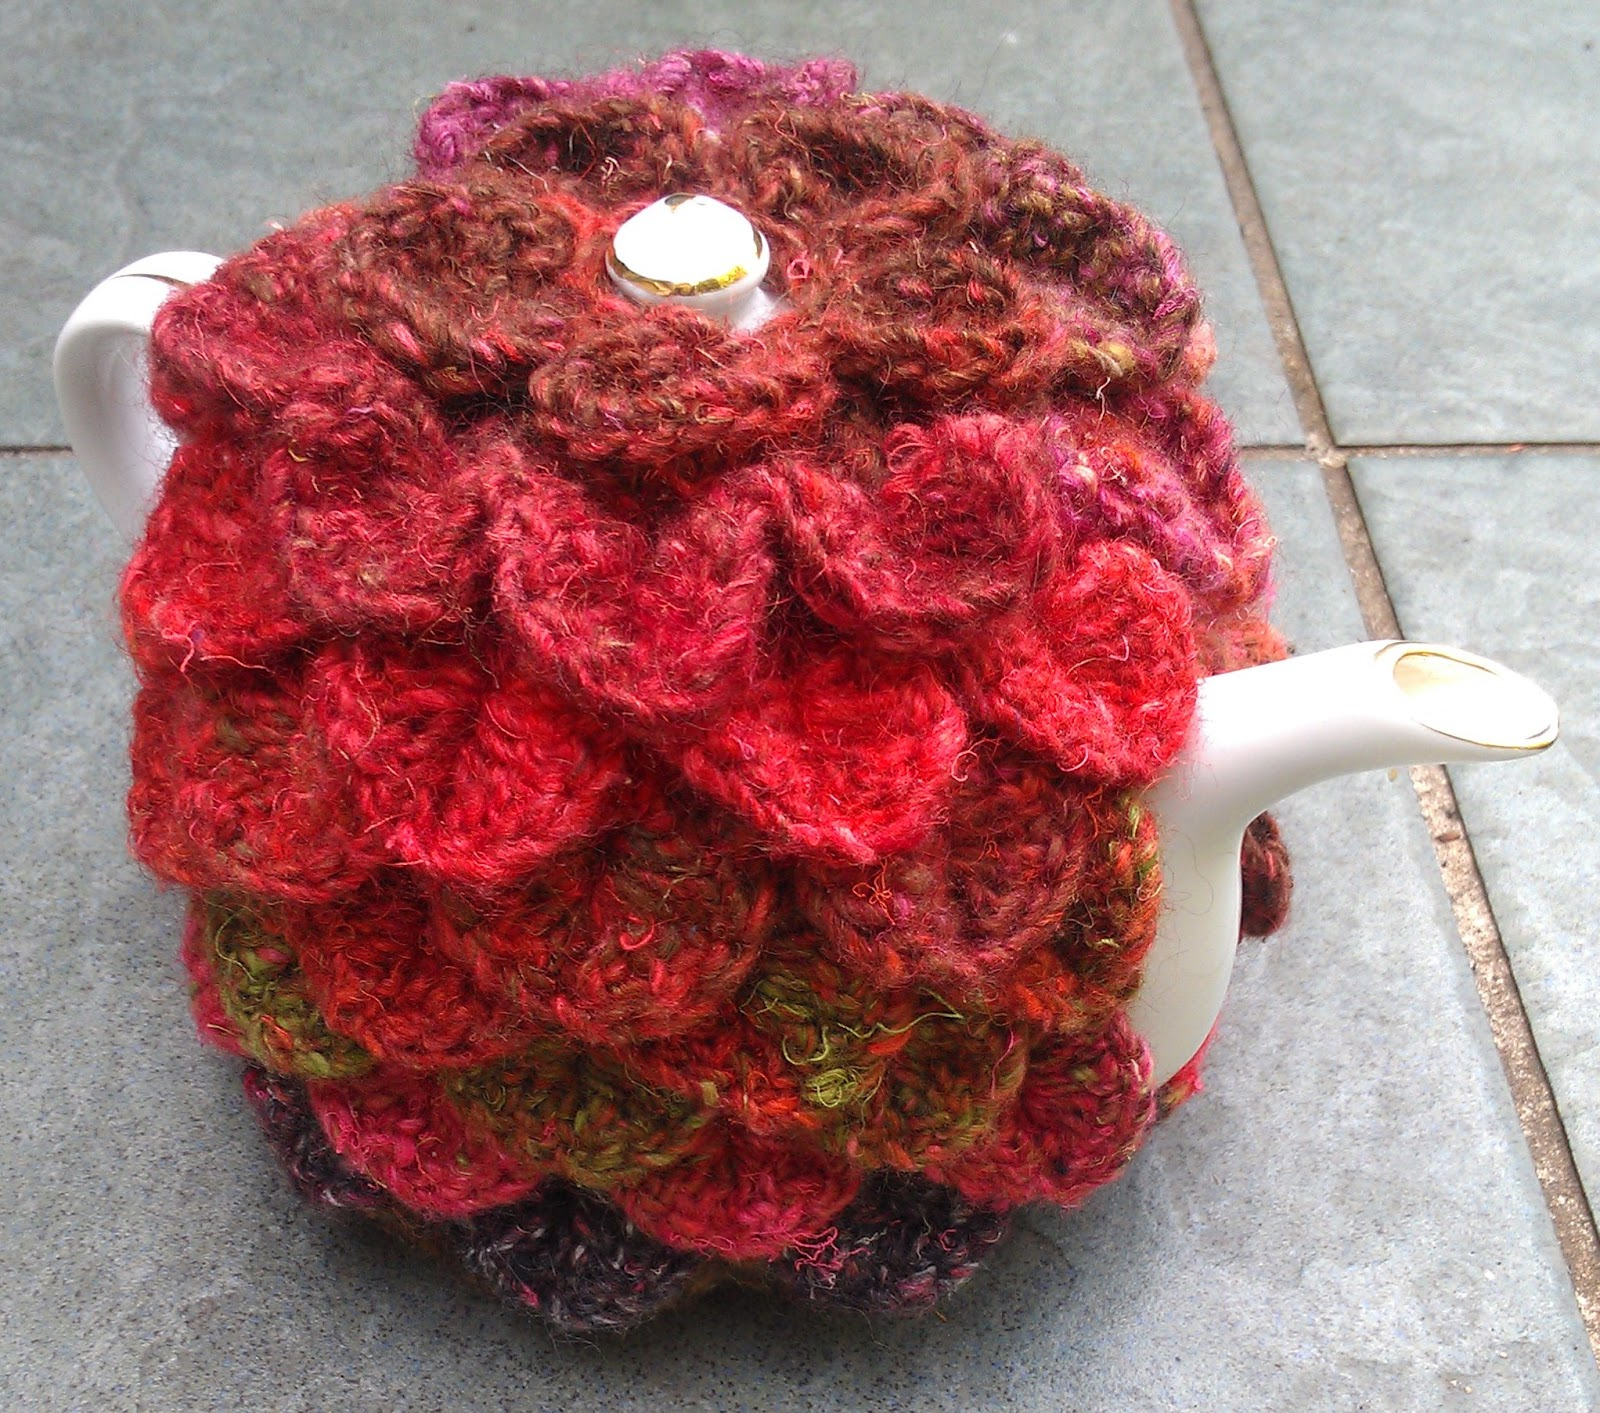 Patterns For Knitted Tea Cosies Craft A Cure For Cancer Free Tea Cosy Patterns